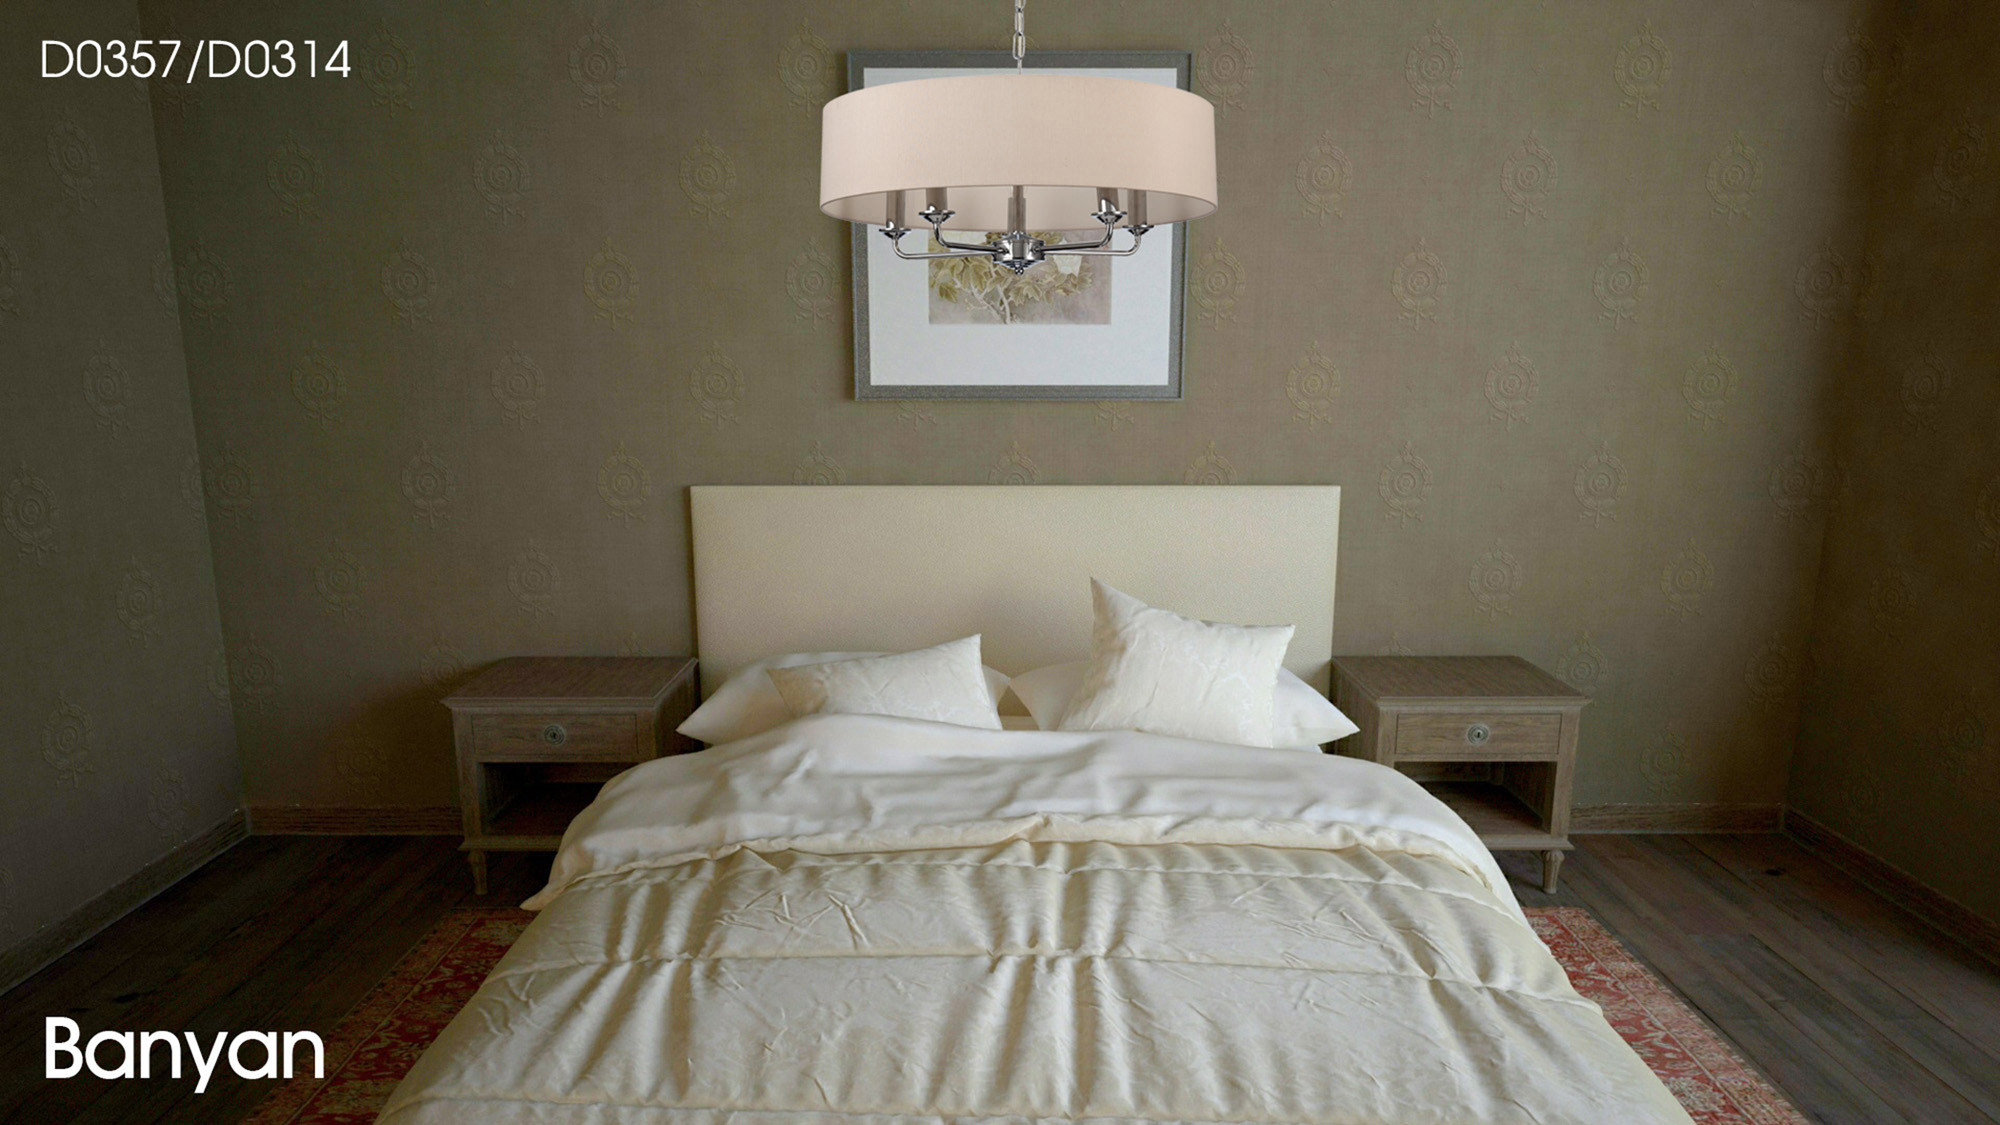 Banyan Ceiling Lights Deco Contemporary Ceiling Lights